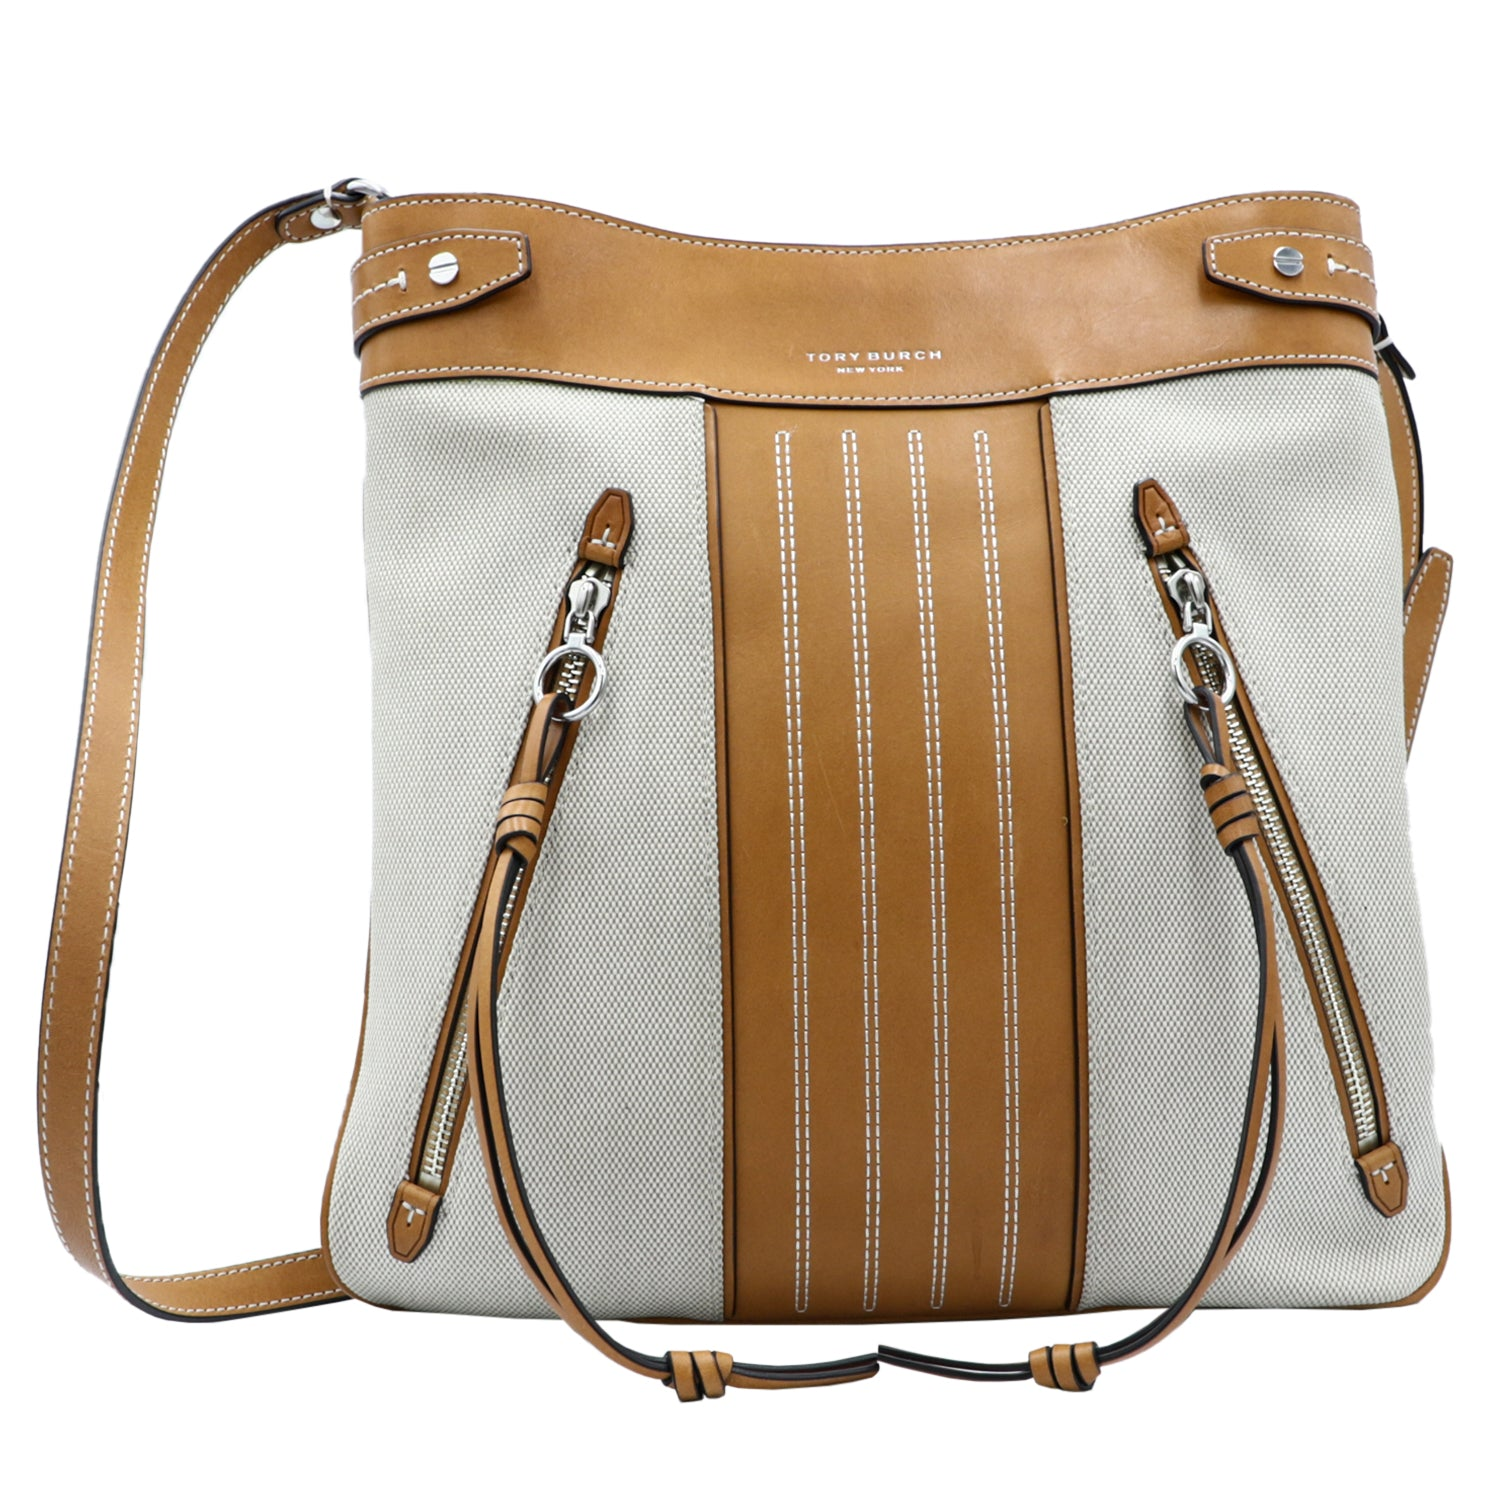 Moto Swingpack Canvas & Leather Crossbody Tote - Ivory In Natural | Shop TORY BURCH Online India